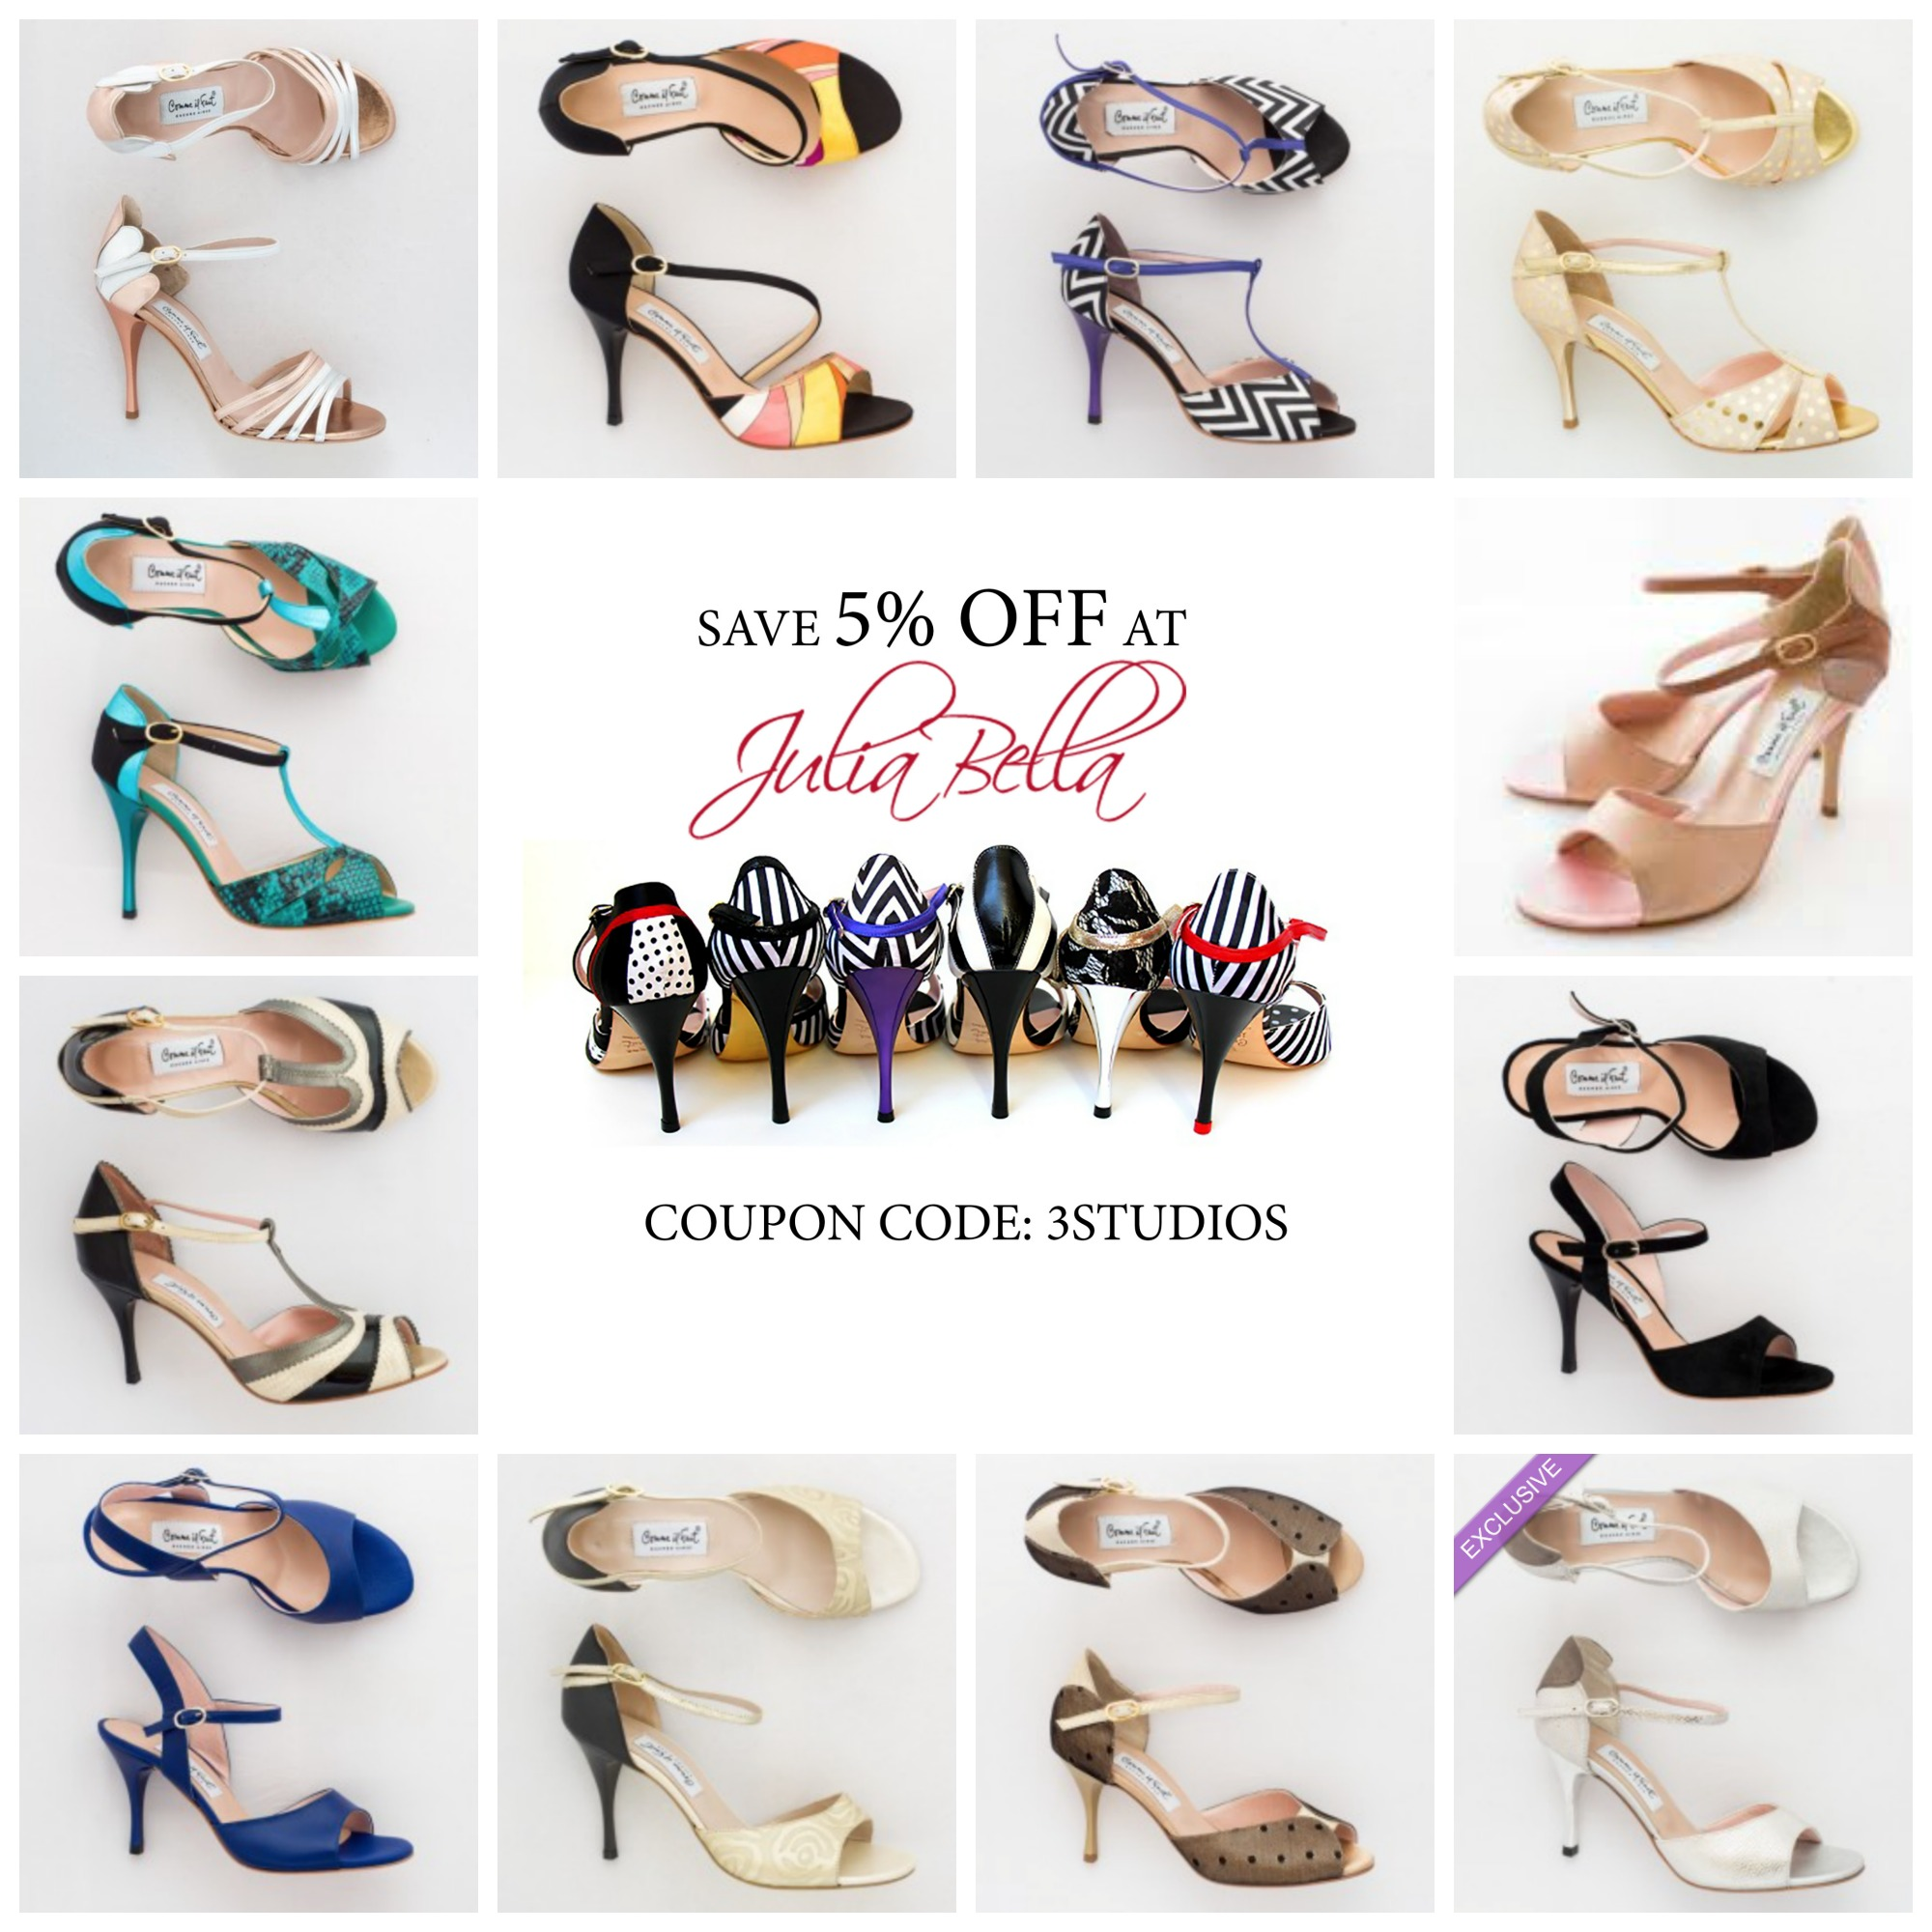 purchase come il faut tango shoes online - discount for three studios.net readers